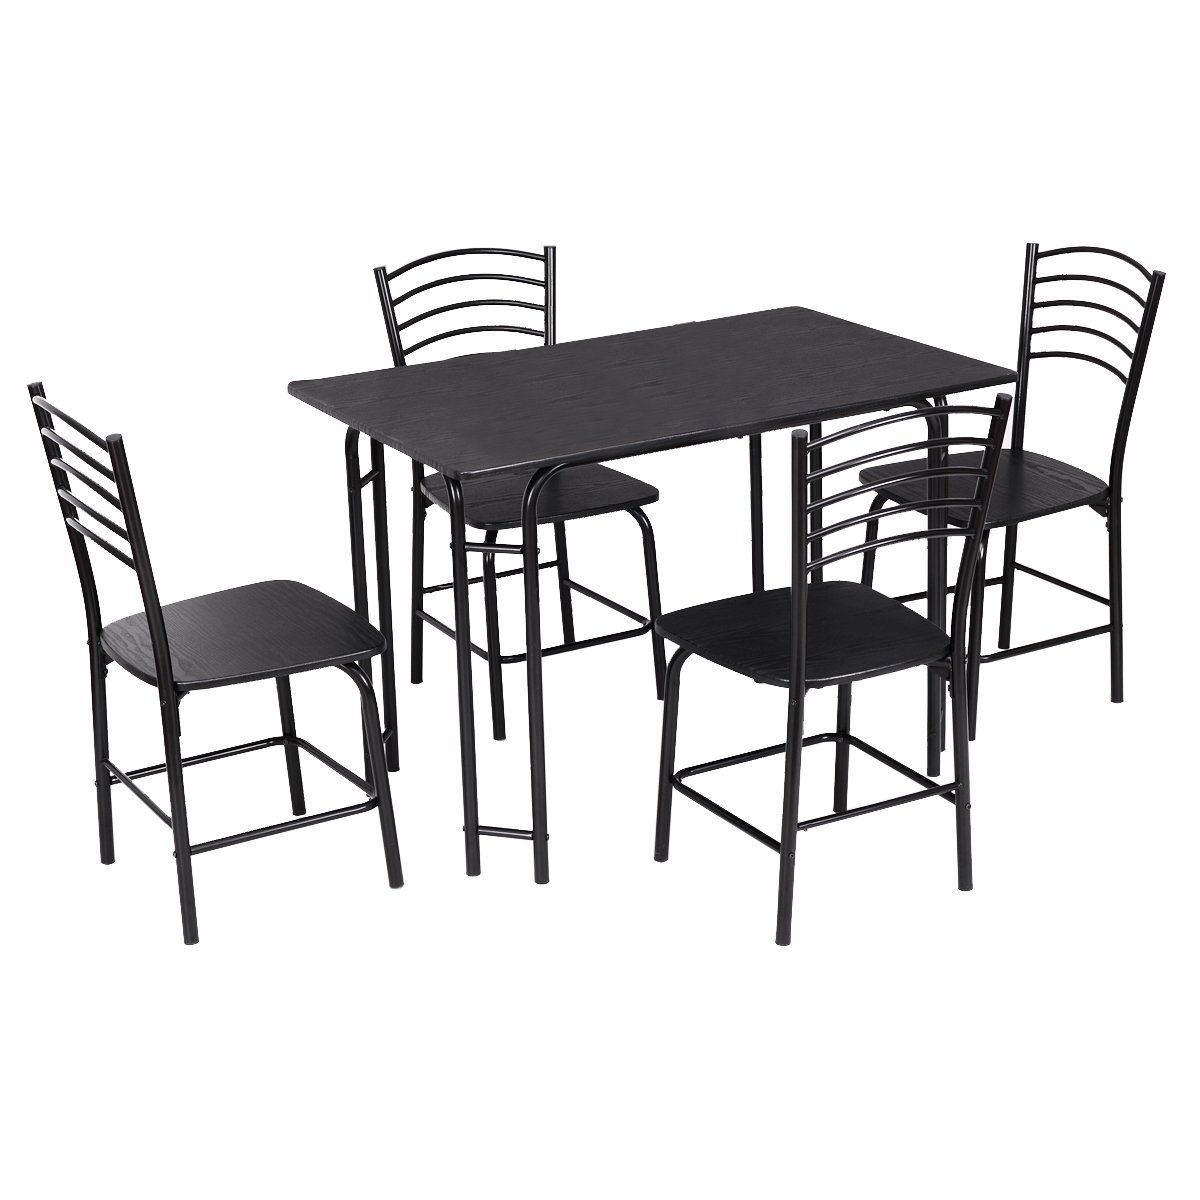 Amazon Com Giantex 5 Pcs Black Dining Set Table 4 Chairs Steel Frame Home Kitchen Furniture Modern Kitchen Tables Metal Dining Room Coffee Table Steel Frame